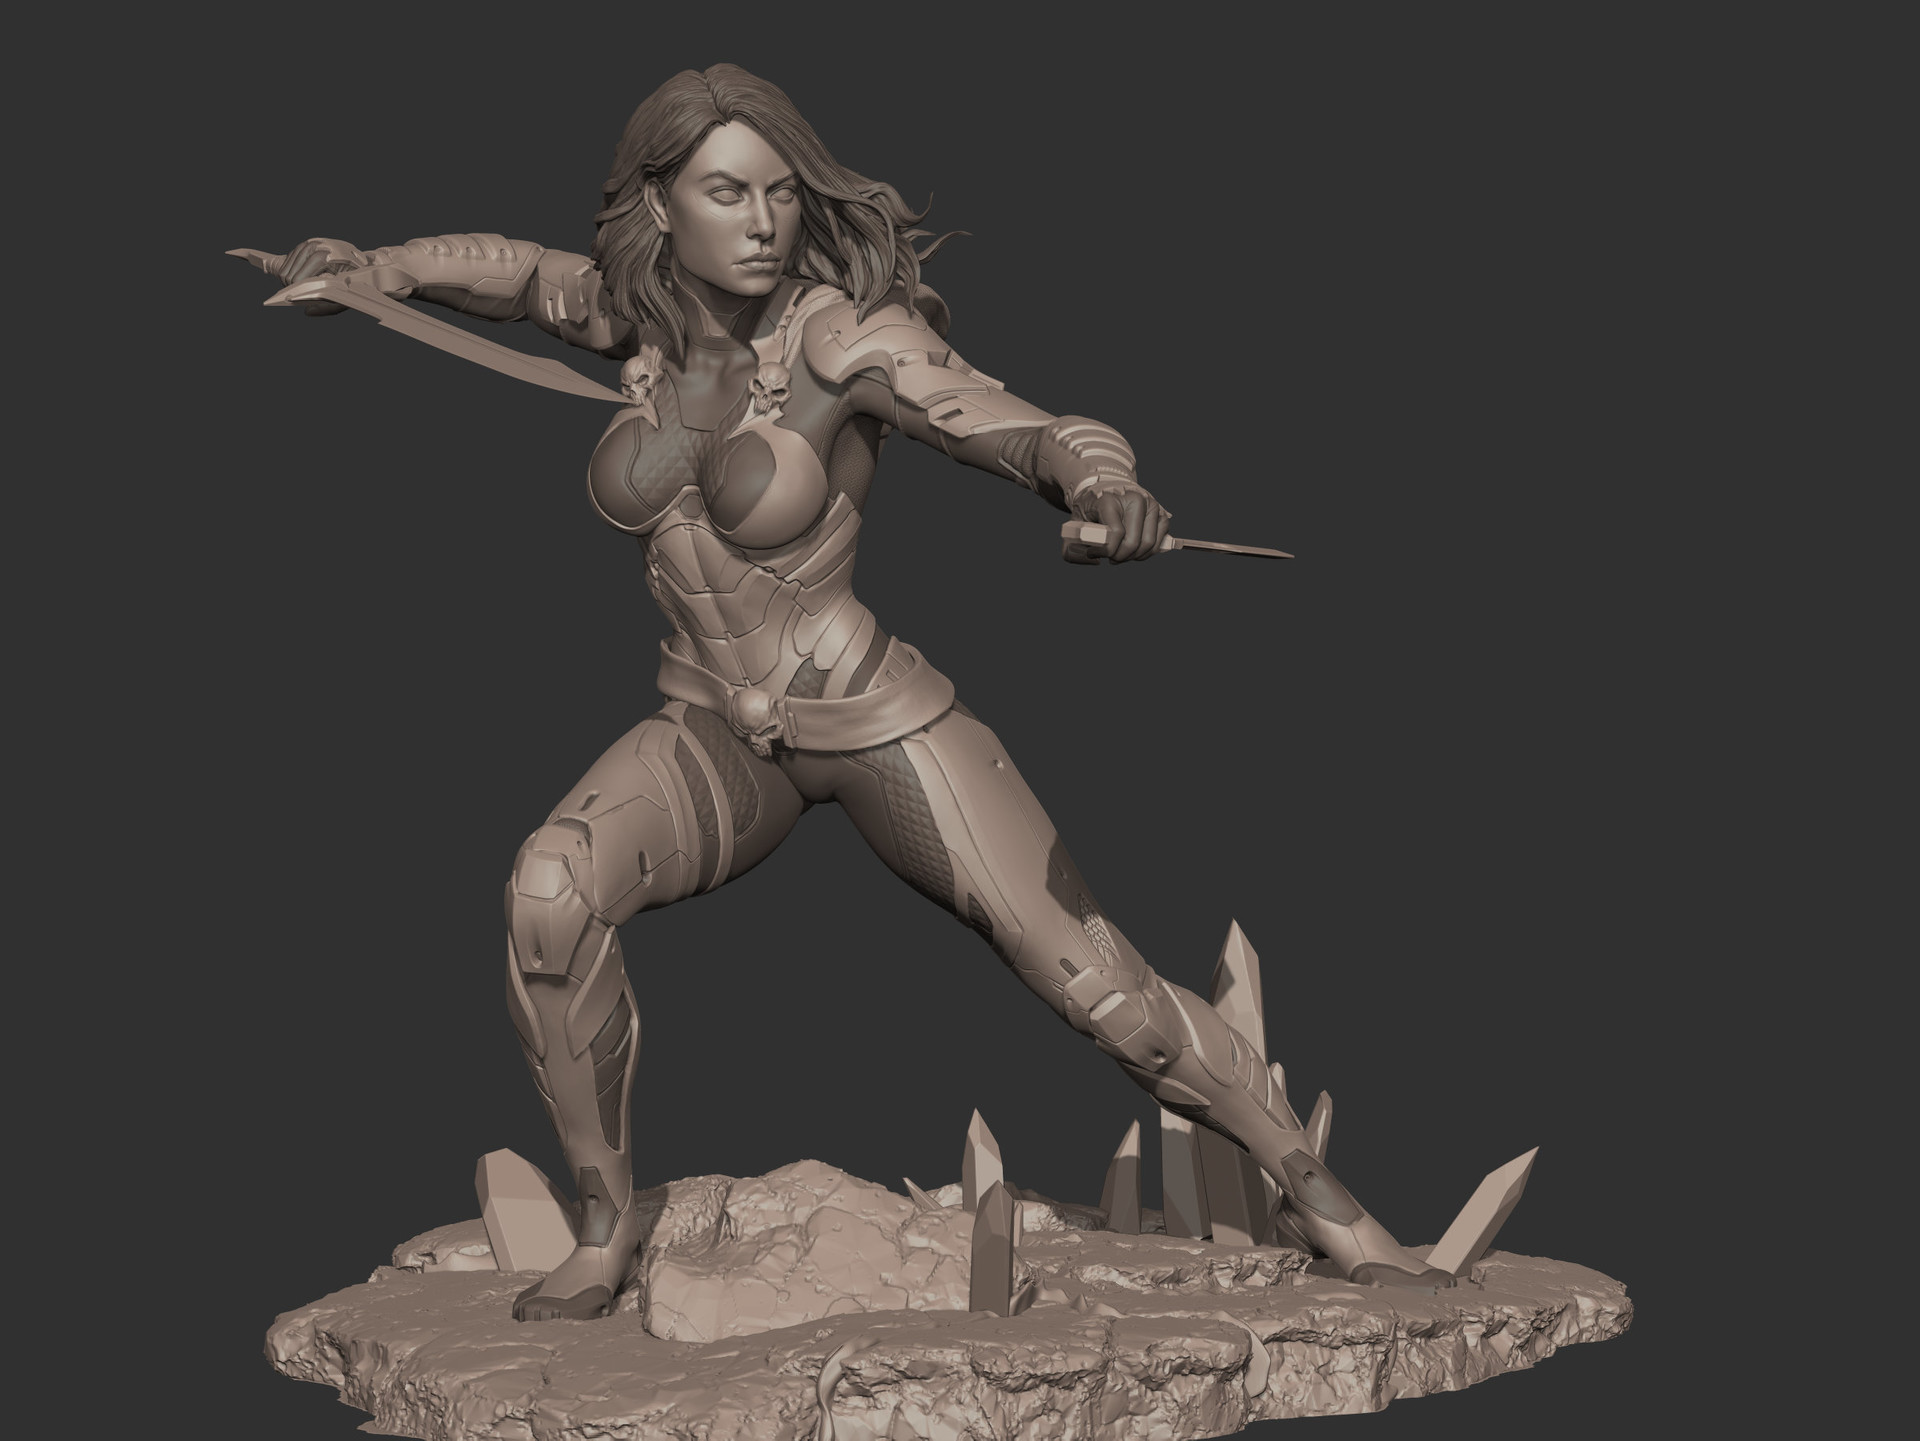 David giraud zbrush document4 2